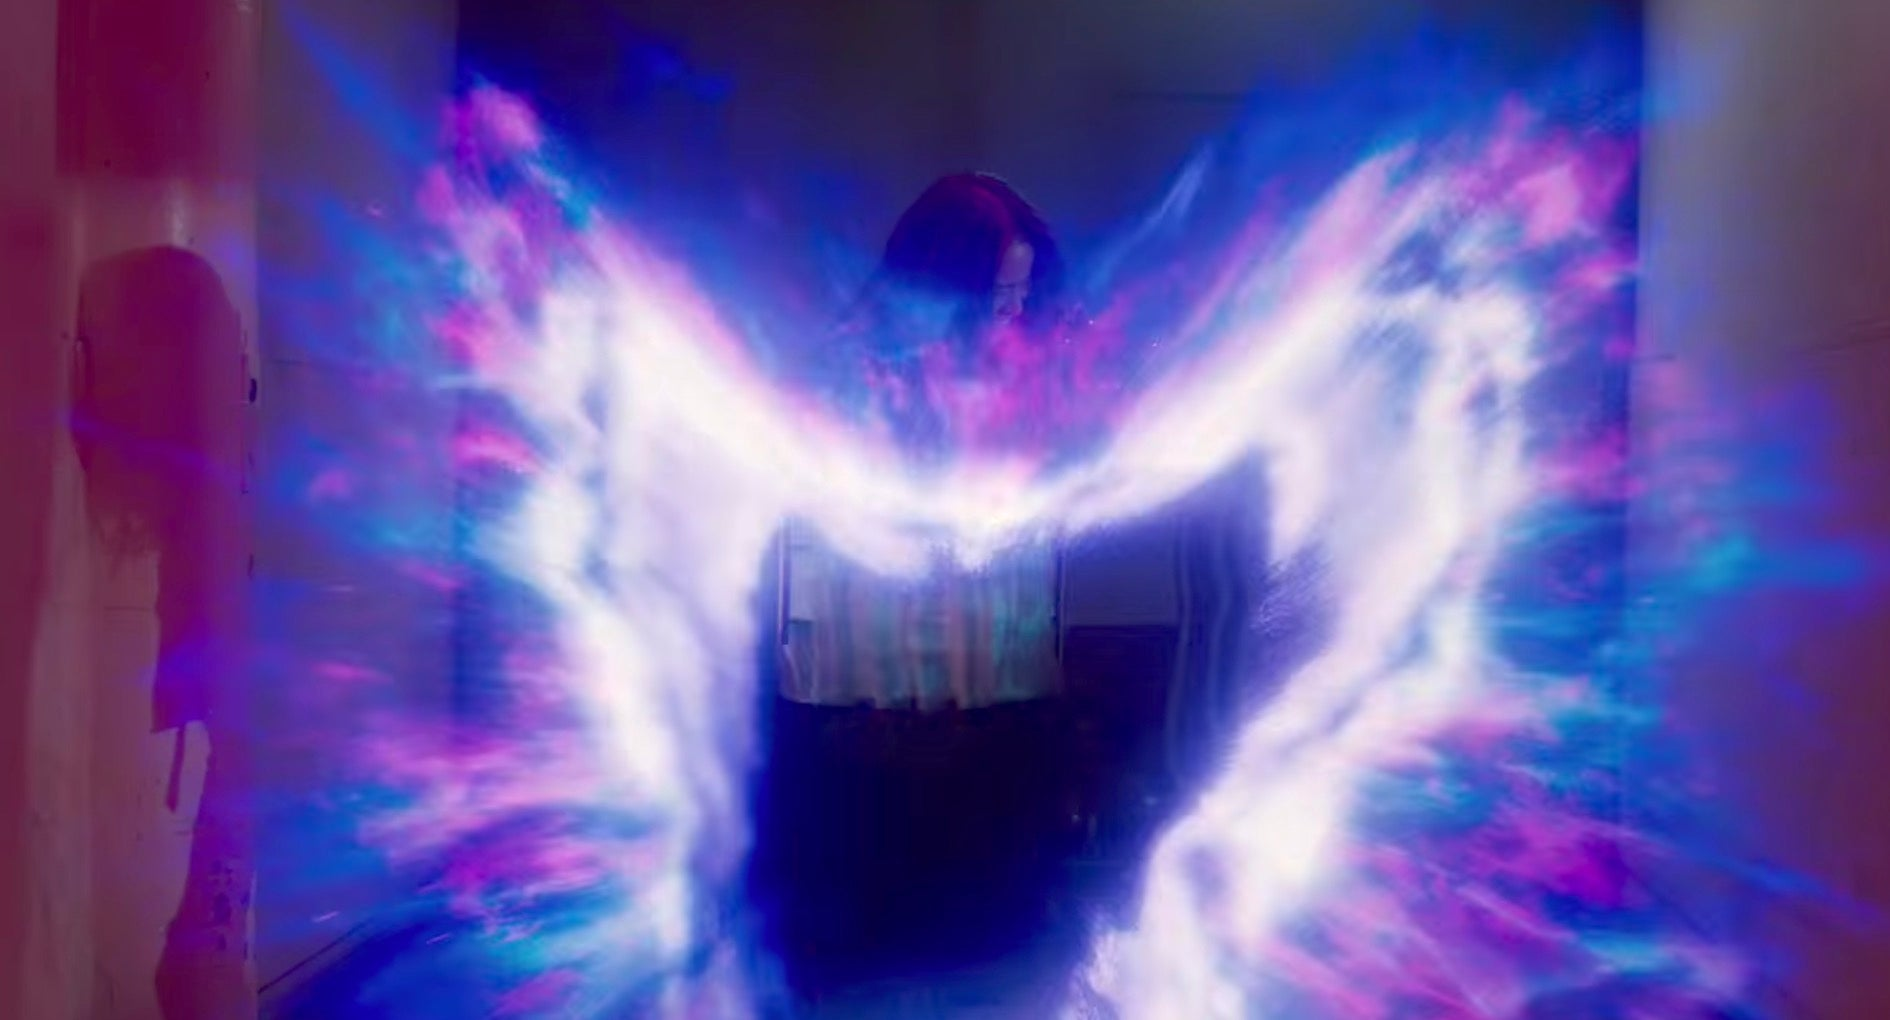 The First Teaser For Bryan Singer's X-Men Show The Gifted Is Here